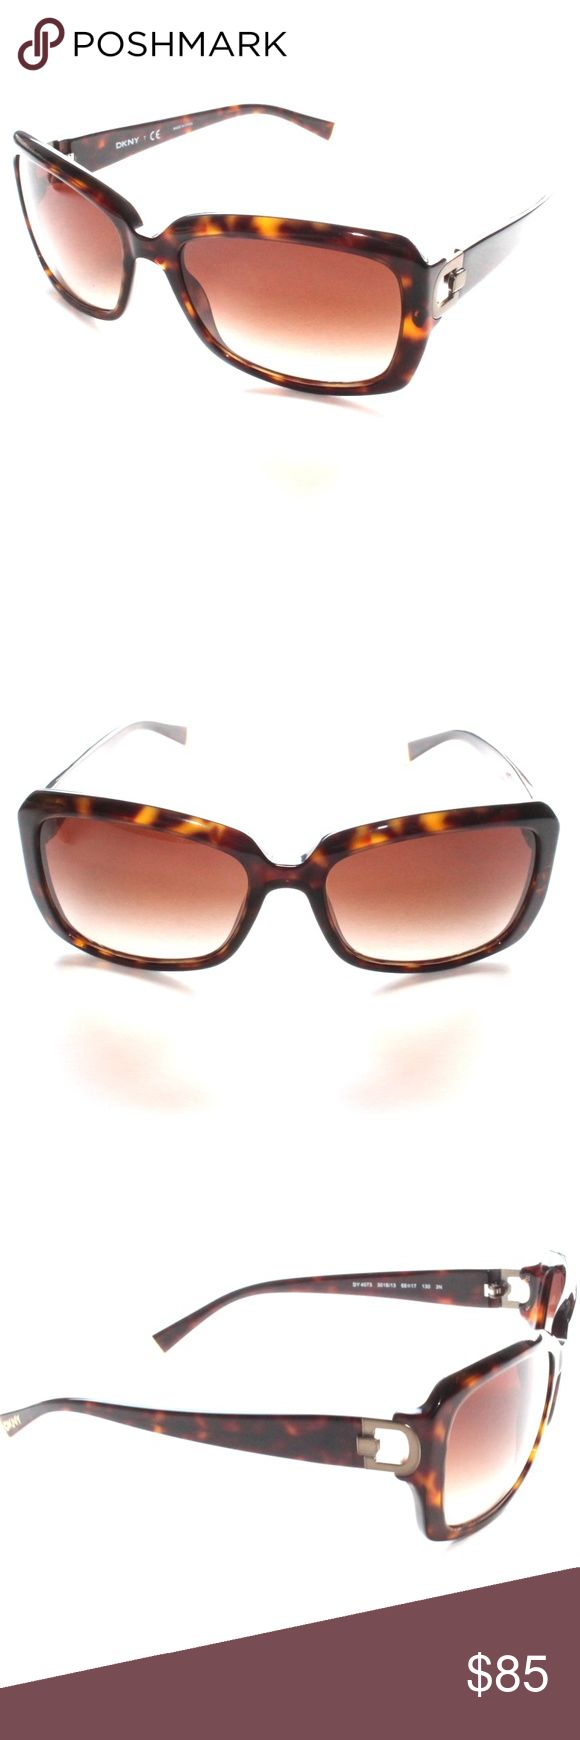 DKNY DY DY 4073 3016 Dark Tortoise RX Sunglasses Brand New 100% authentic DKNY DY DY 4073 3016 Dark Tortoise RX Sunglasses  Comes with Generic Case, NO Pouch DKNY Accessories Sunglasses